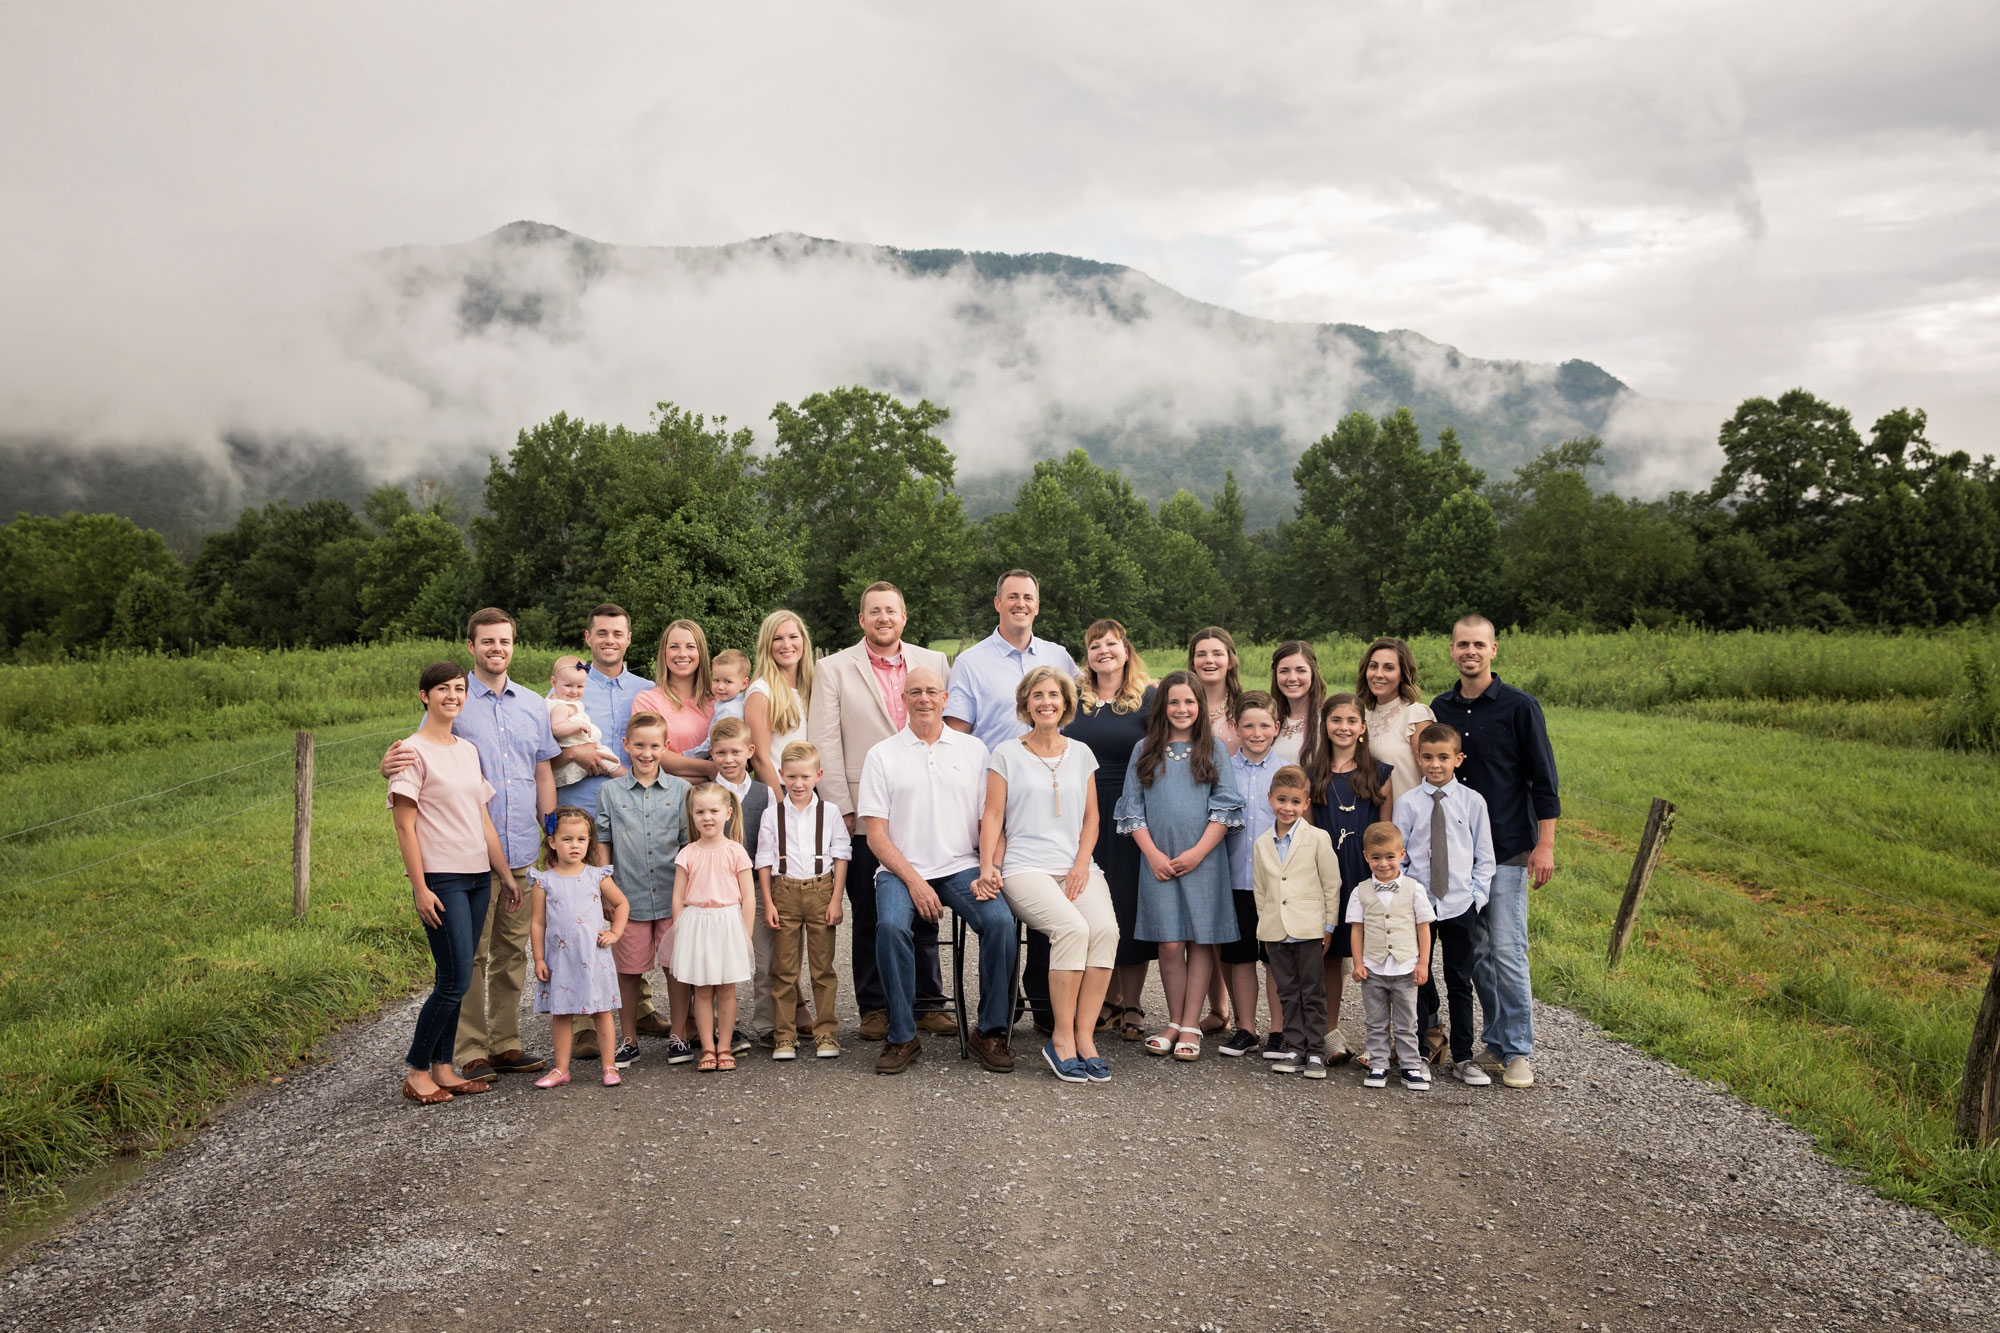 Gatlinburg-family-renion-photographer-lareg-family.jpg